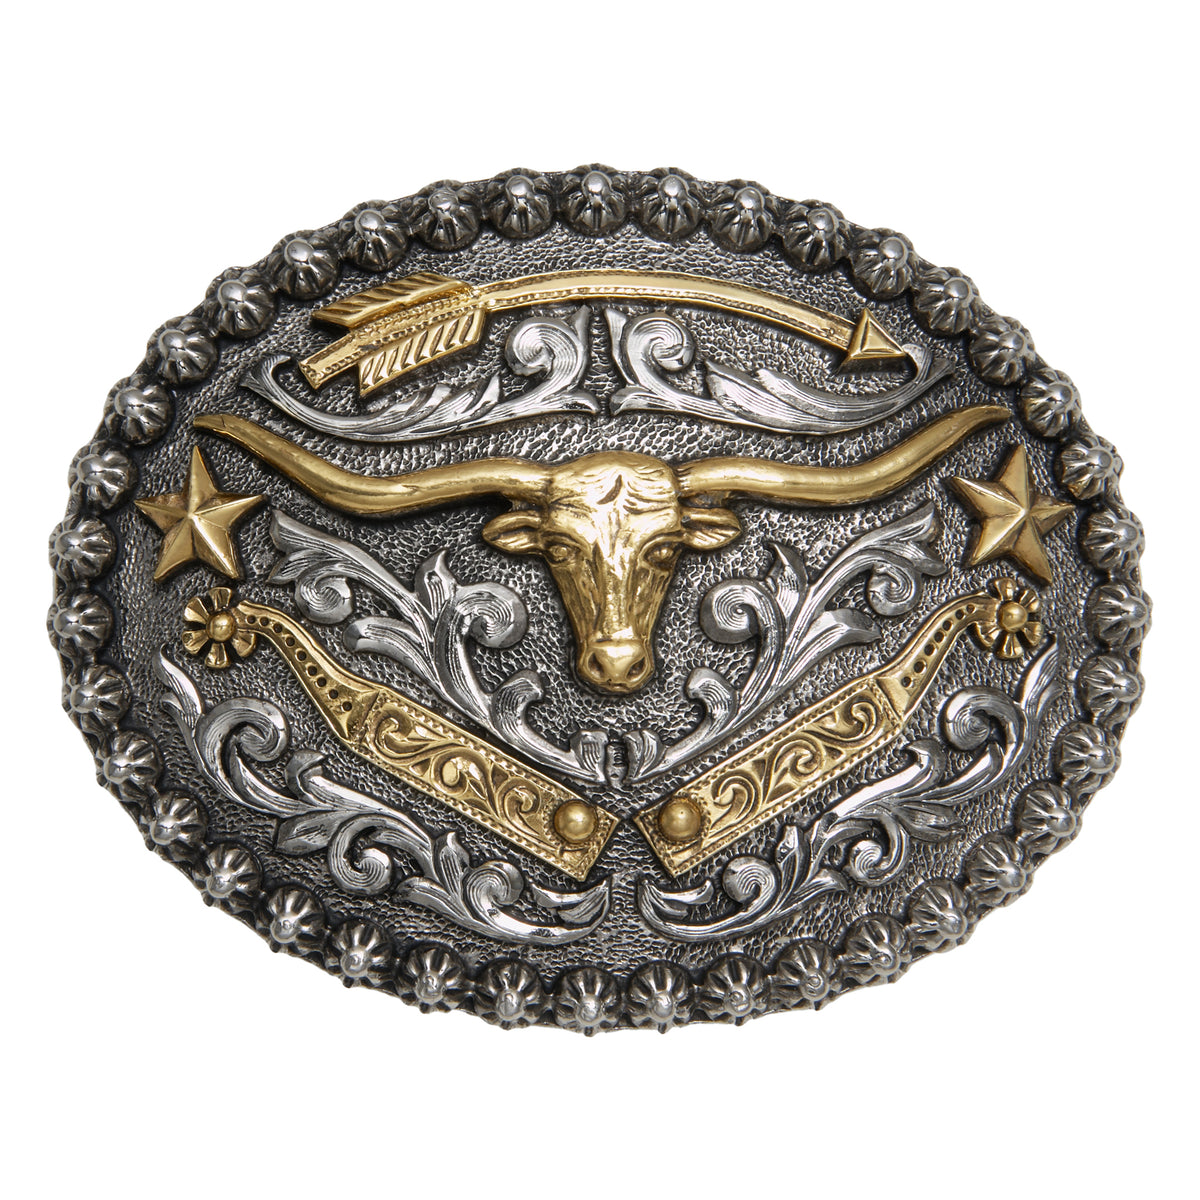 Longhorn with Arrow and Spurs Buckle